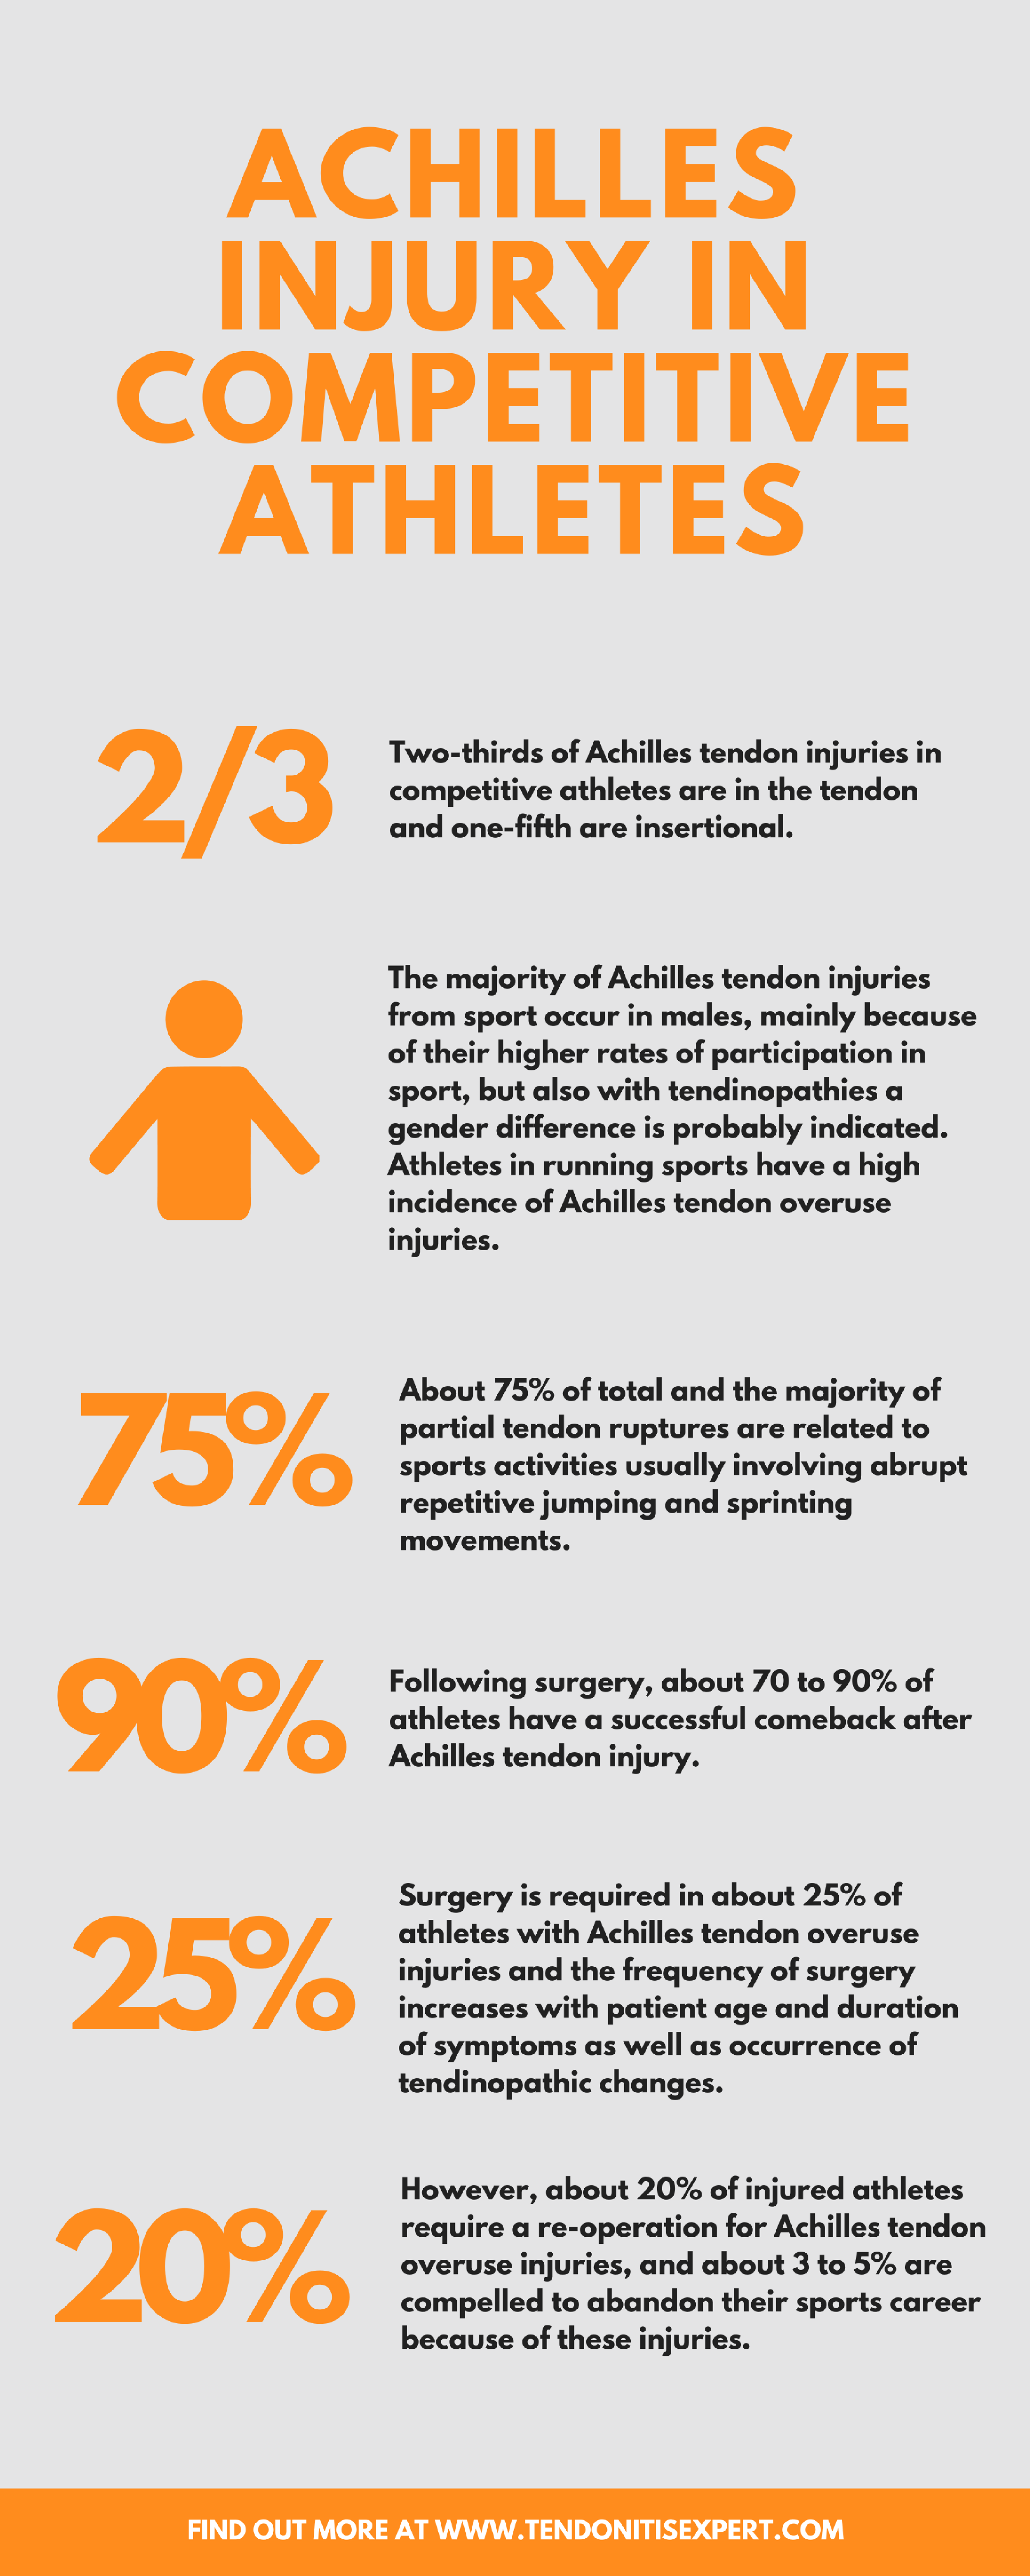 Infographic - Achilles tendon rupture  in competitive athletes  www.tendonitisexpert.com/achilles-tendon-rupture.html